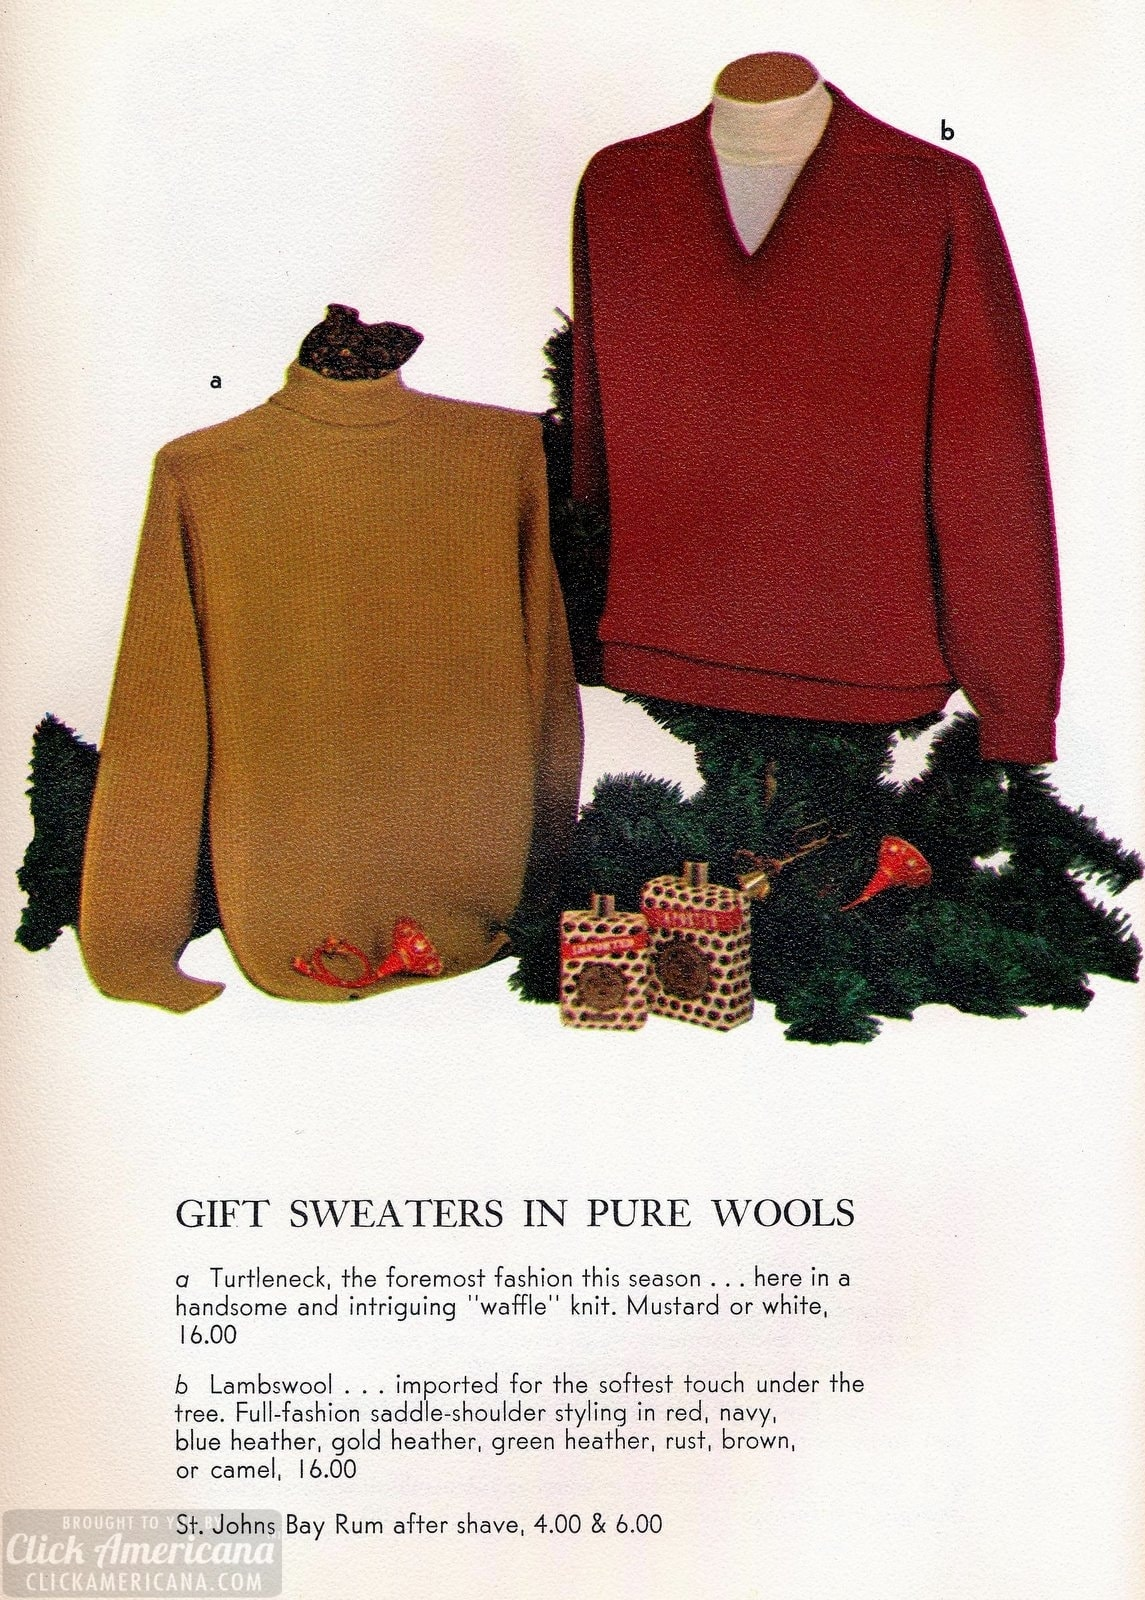 Catalog of gifts for men and boys from M Shwartz & Co. 1968 (10)